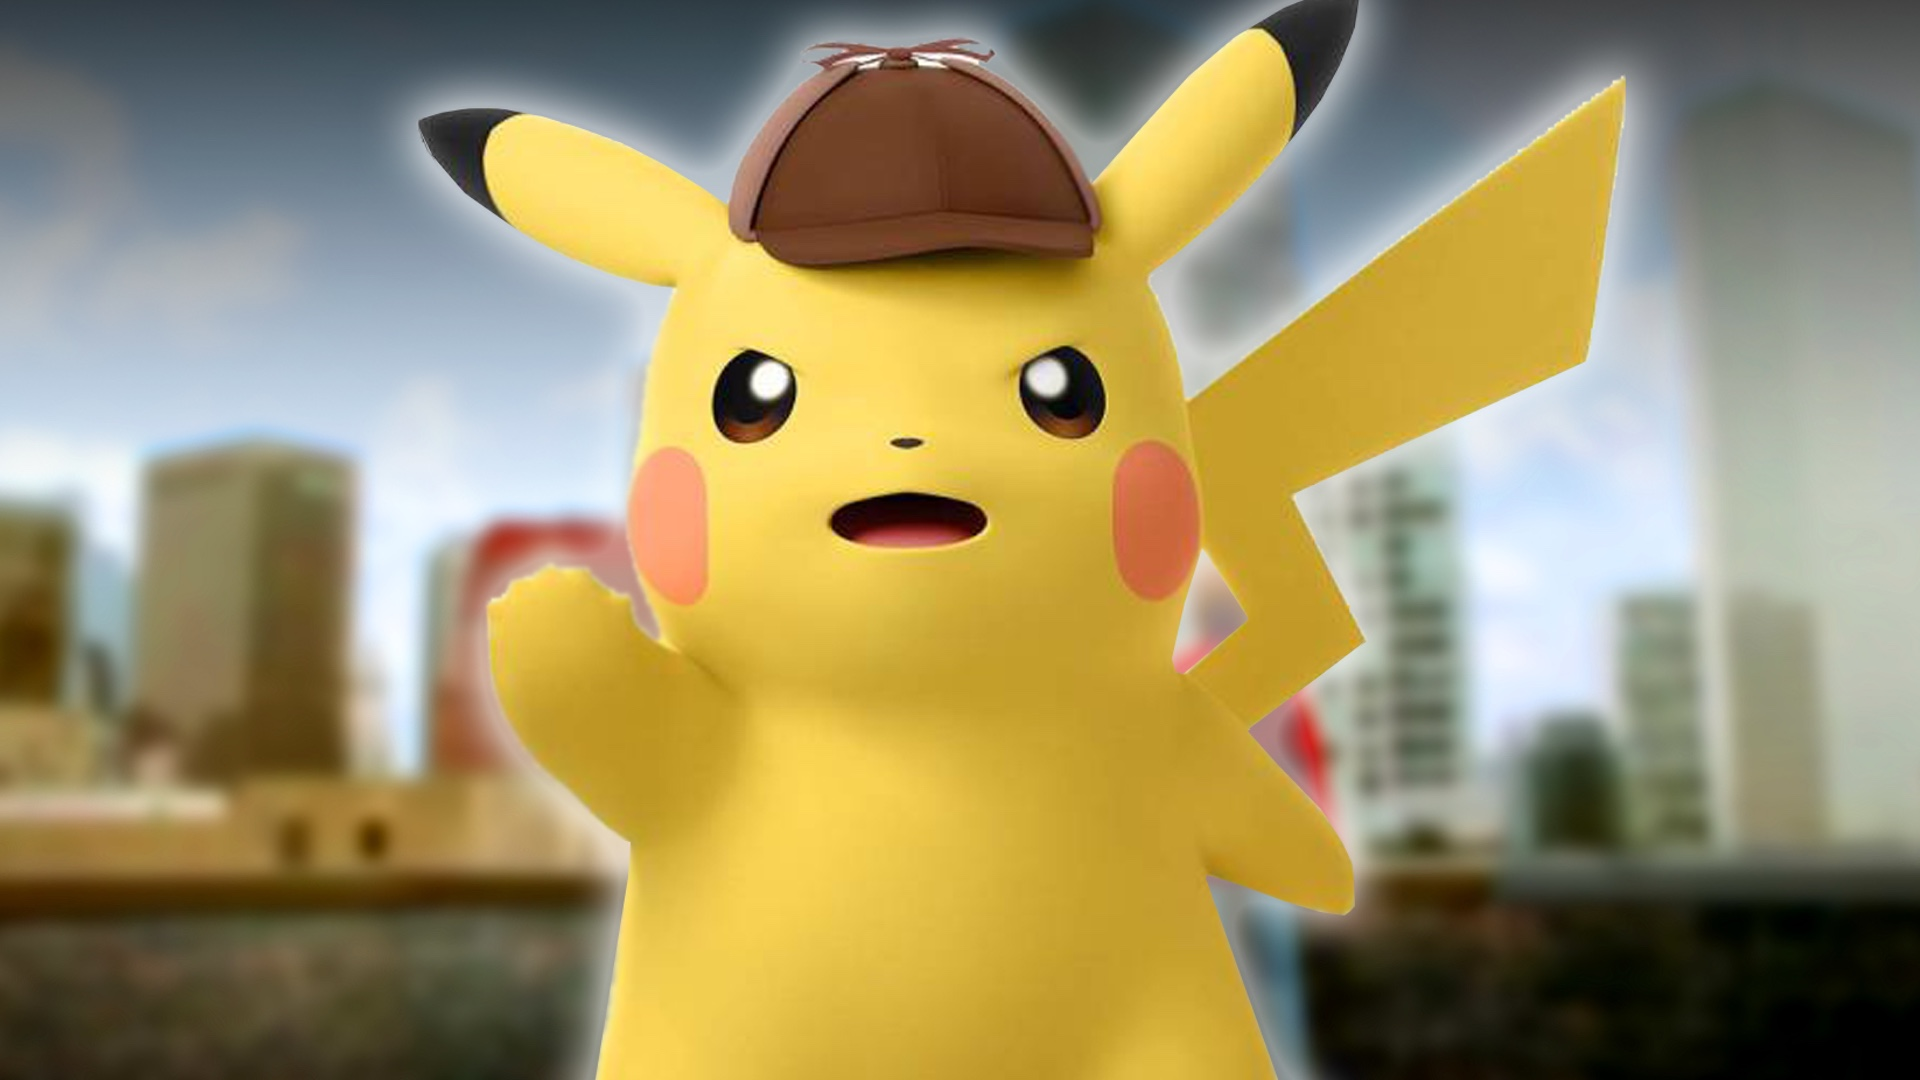 The Detective Pikachu Pokemon Movie Will Be Directed By Goosebumps Director Rob